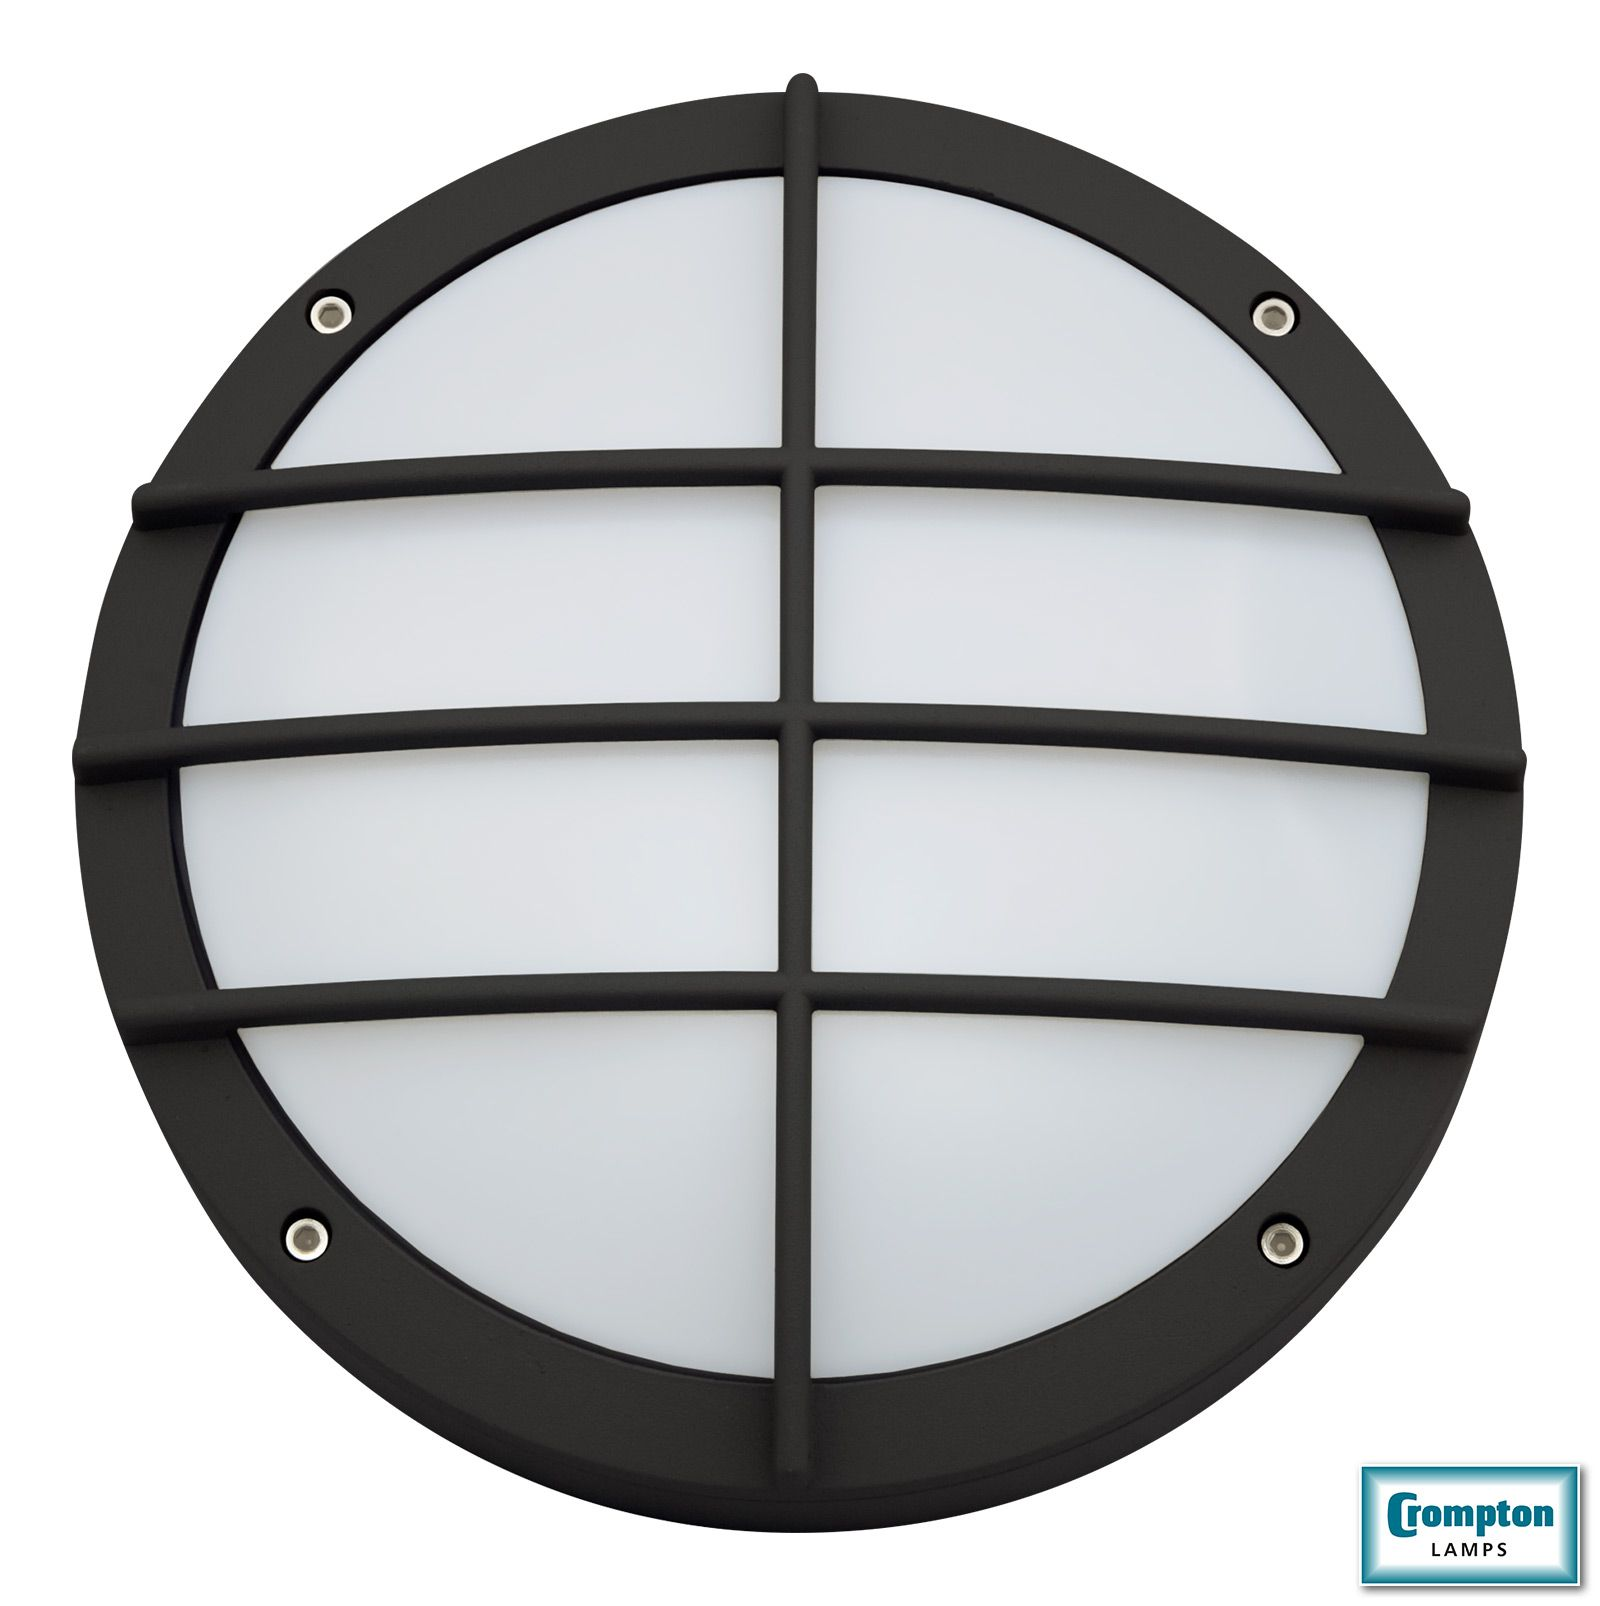 Granite Grid Bulkhead Heavy Duty Round Die Cast Aluminium Bulkhead Luminaires With Grid Design And Polycarbonate Opal Diffuse Grid Design Light Bulb Diffuser